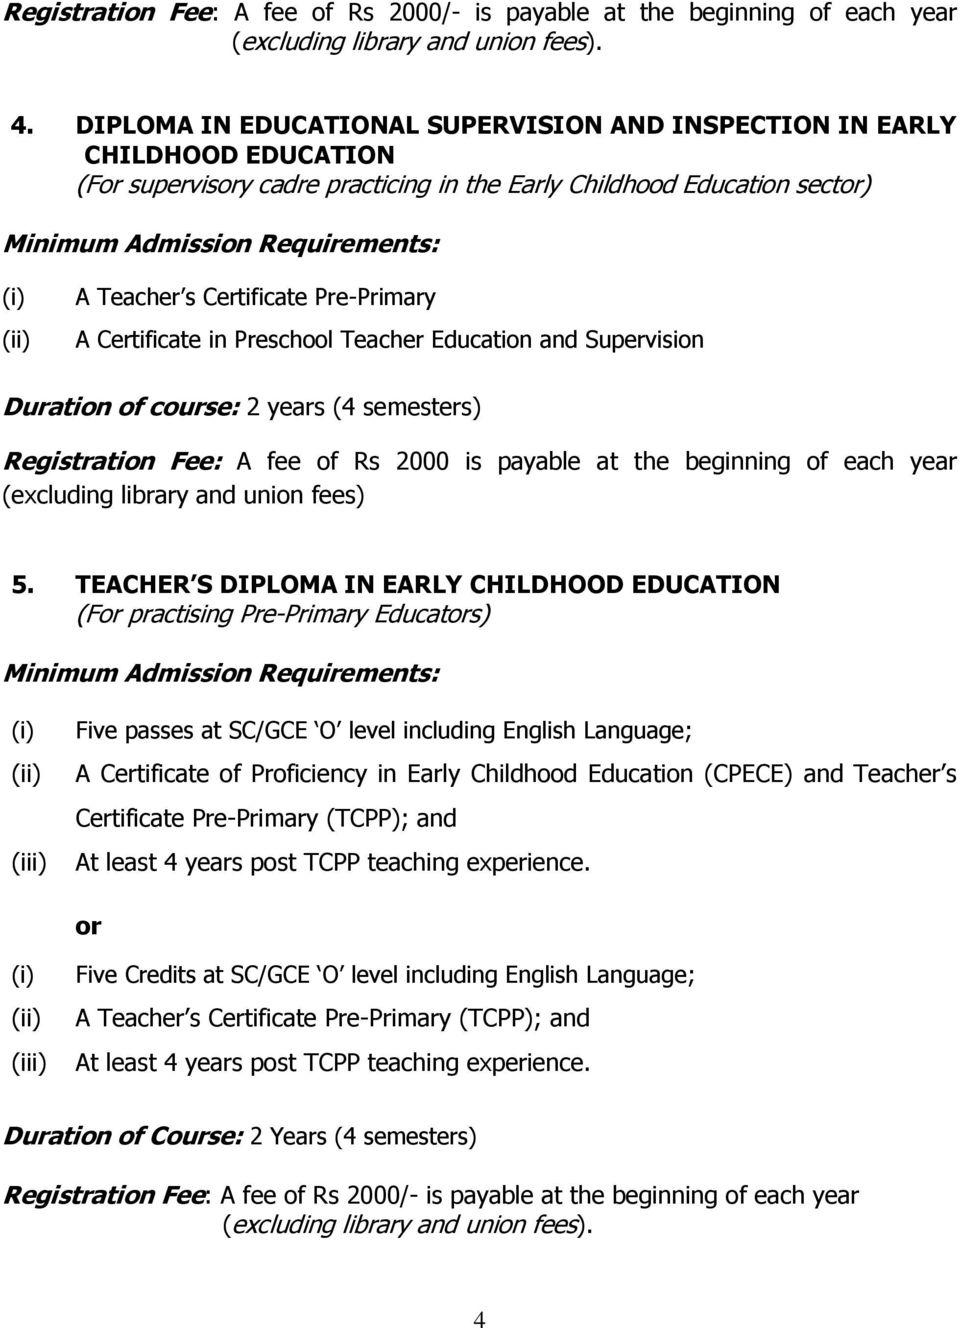 Certificate in Preschool Teacher Education and Supervision Duration of course: 2 years (4 semesters) Registration Fee: A fee of Rs 2000 is payable at the beginning of each year (excluding library and